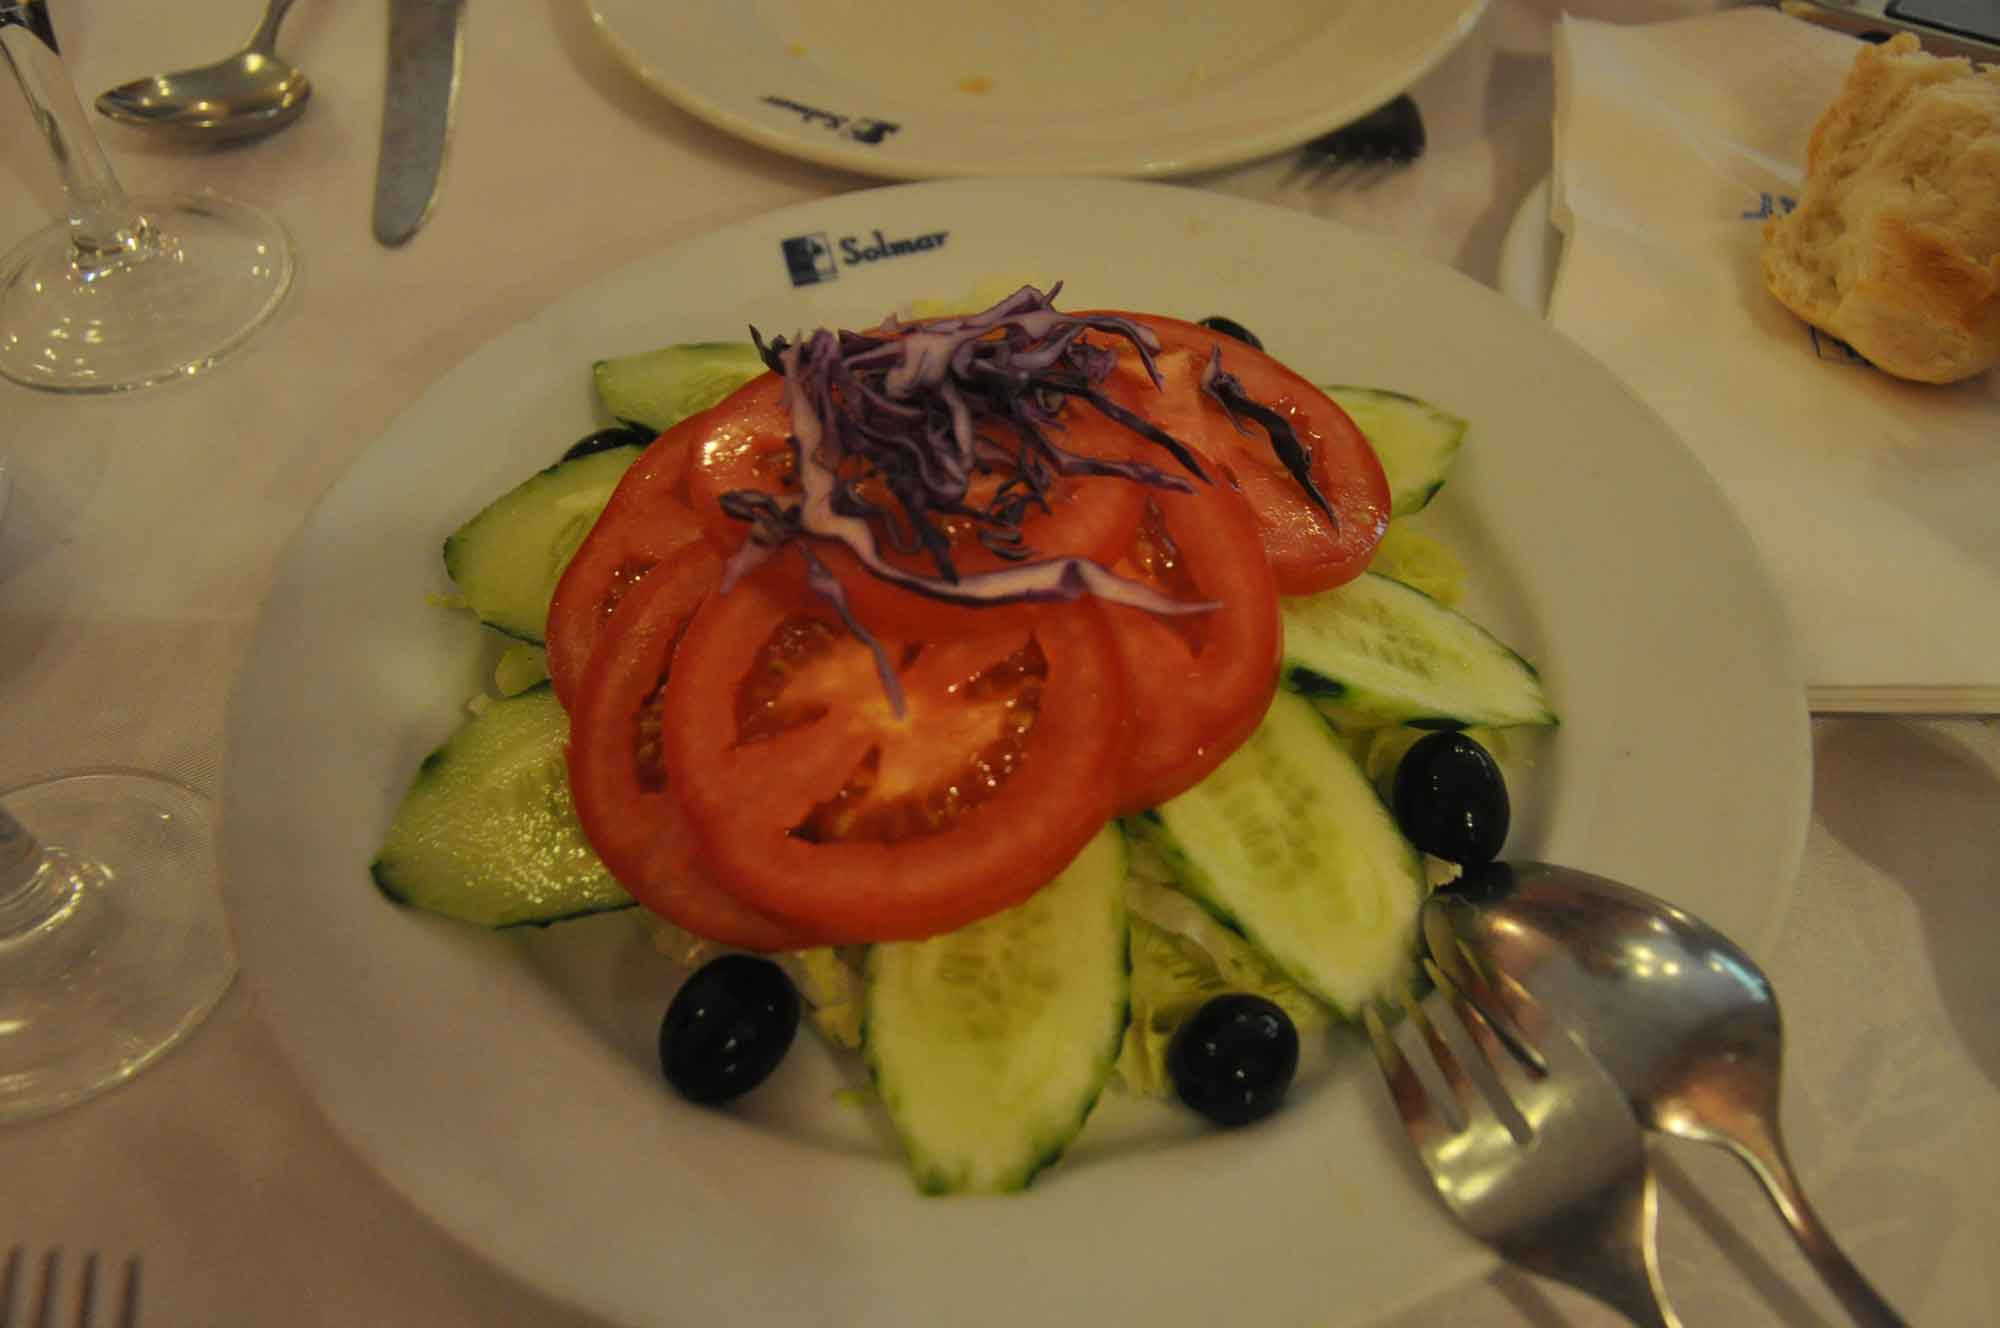 Solmar Macau vegetable salad